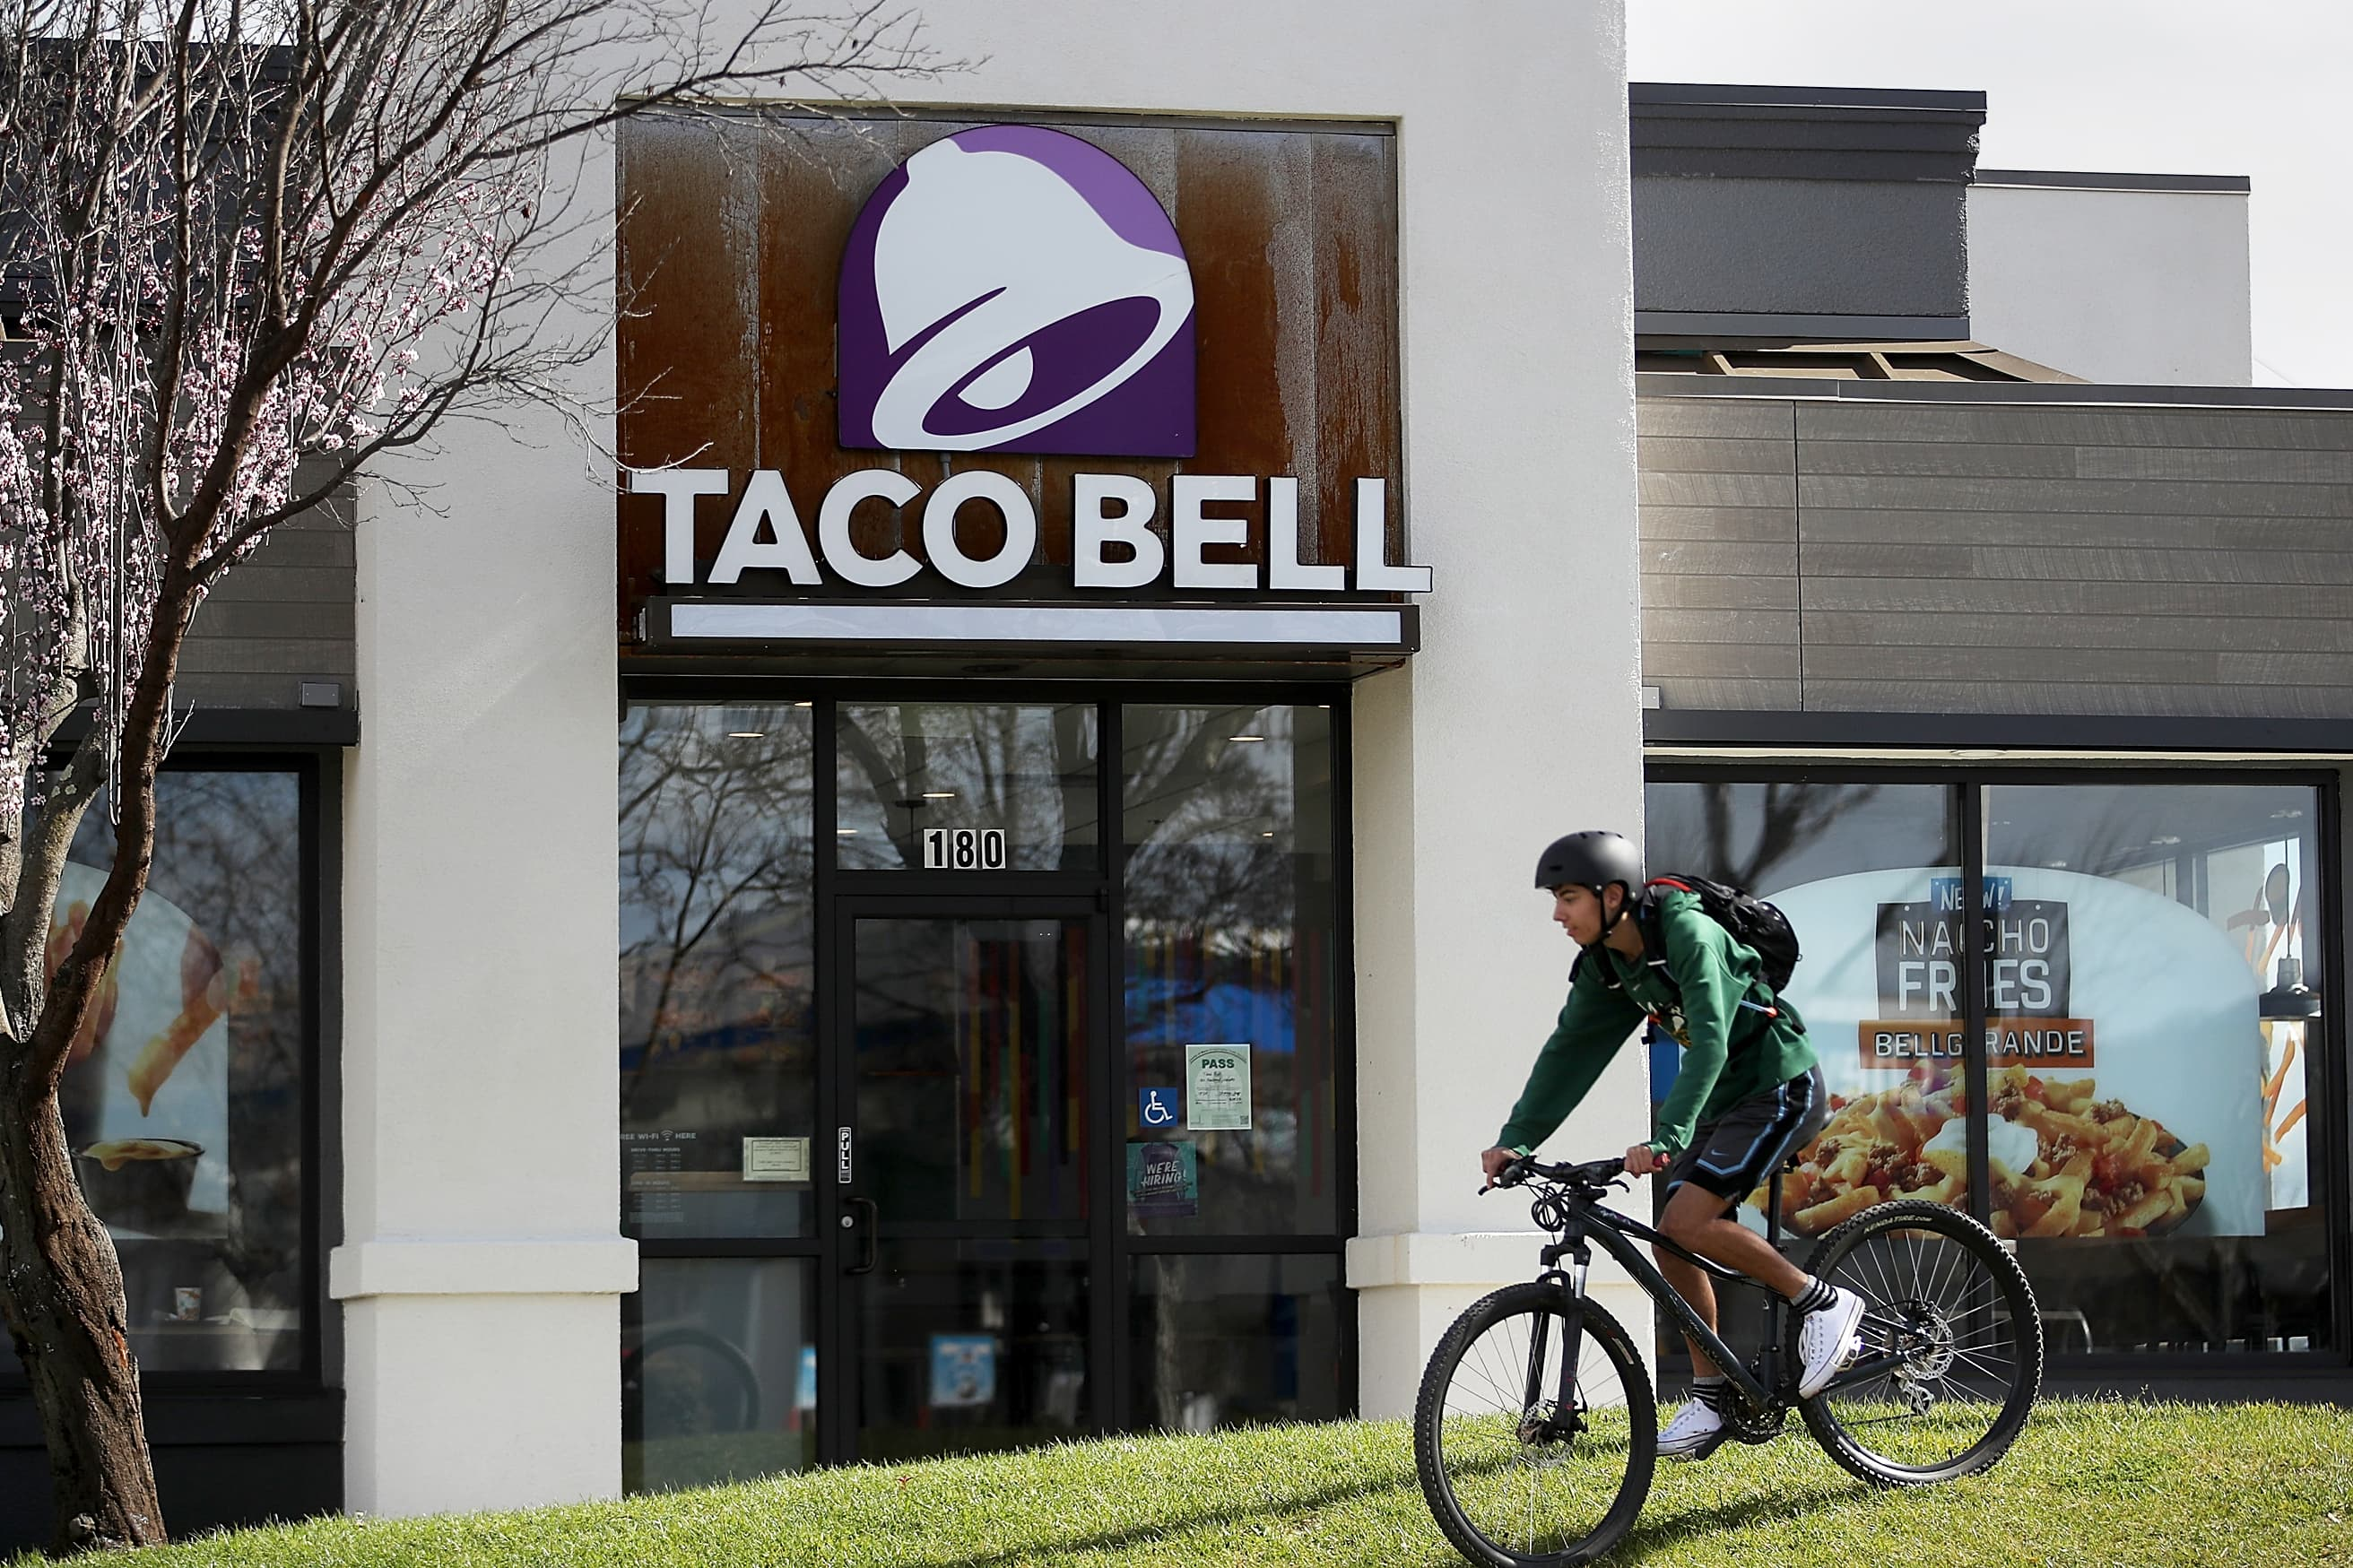 Taco Bell removes Mexican Pizza and other items as it finishes menu streamlining